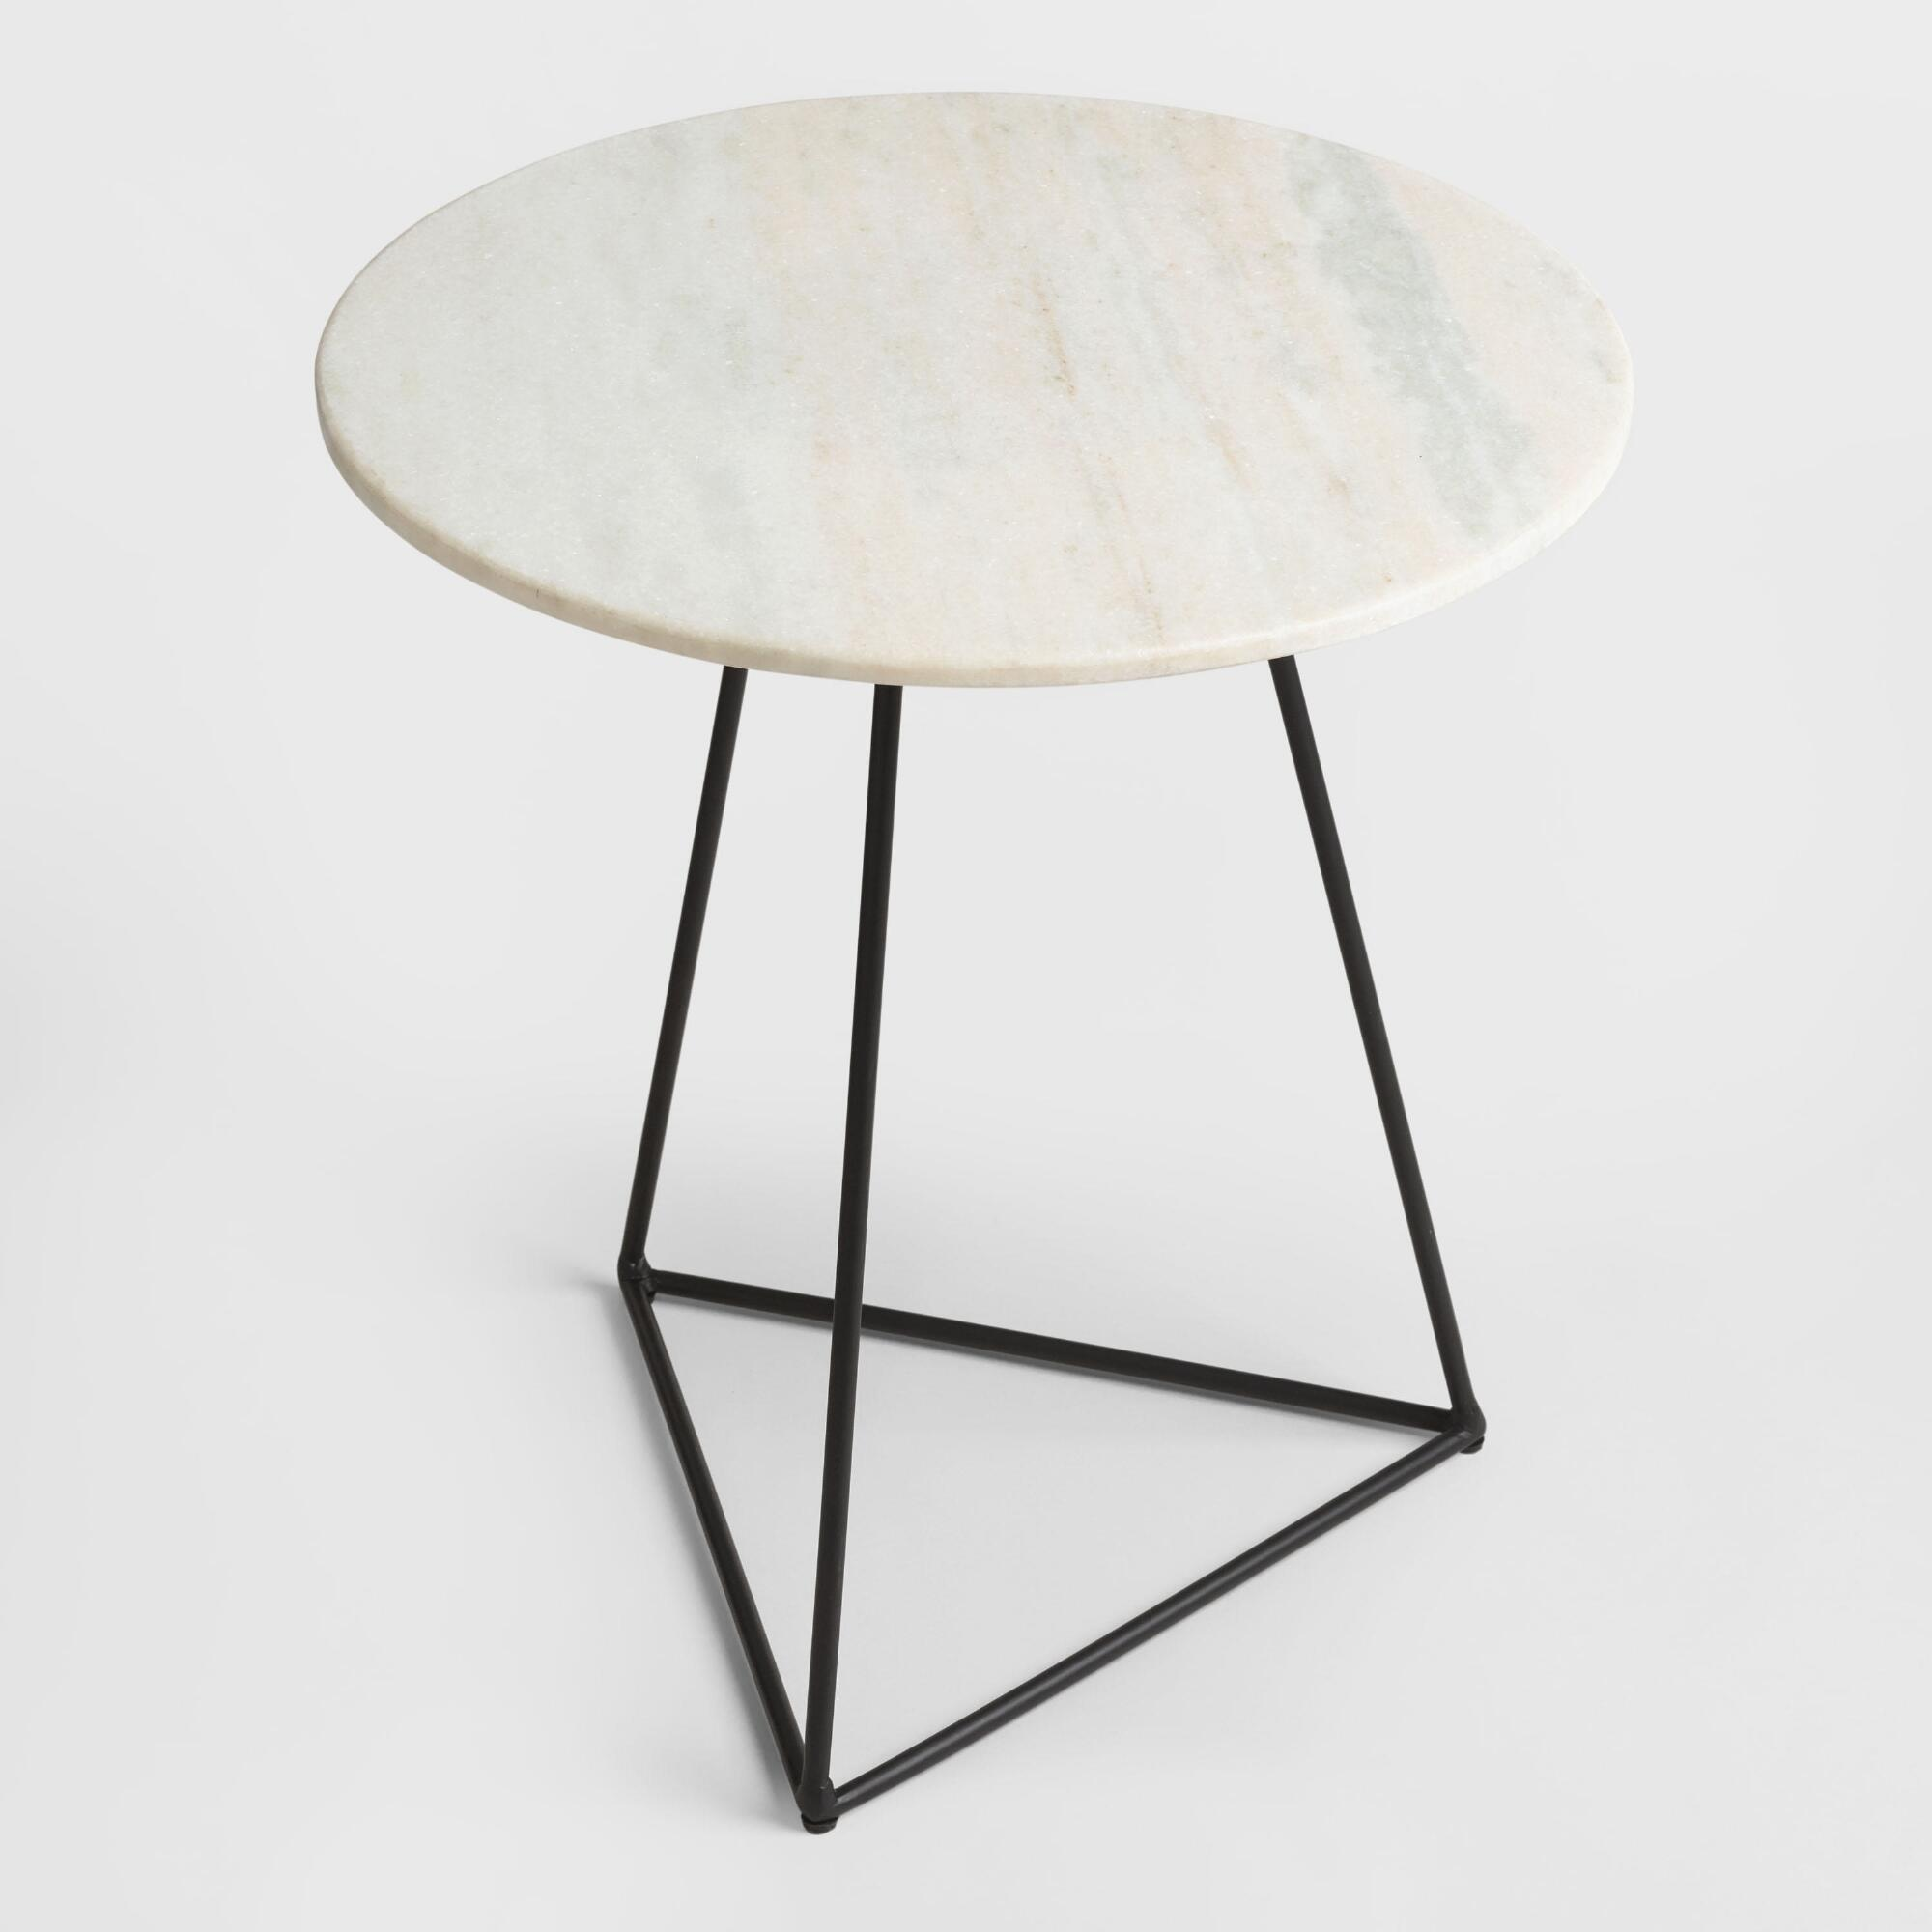 small space coffee side tables world market iipsrv fcgi accent table round white marble and metal brown linen tablecloth wood entry mat furniture dining with sofa seating black